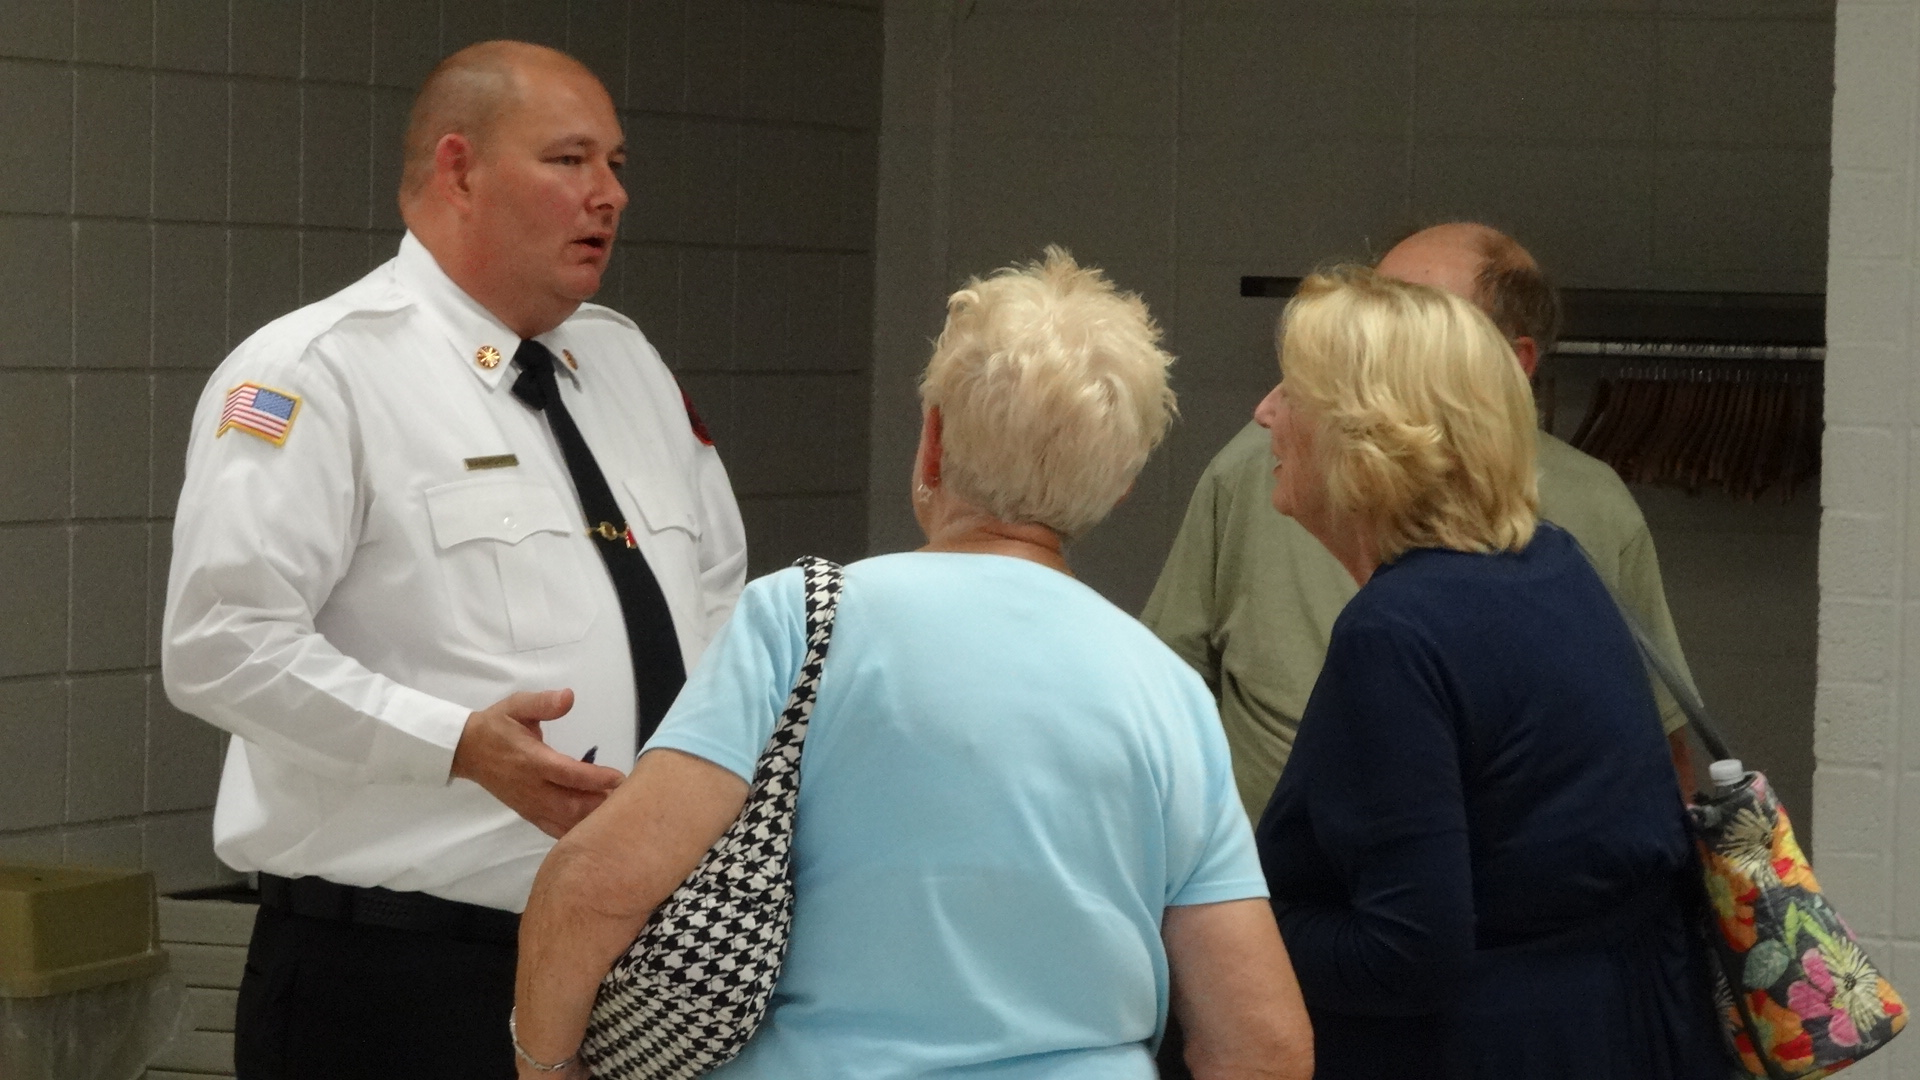 Fire Chief David Masirovits meets with Anna Marie Shargo, center, Ginger Letorneau and Steve Shull at his first Brookfield trustees meeting.